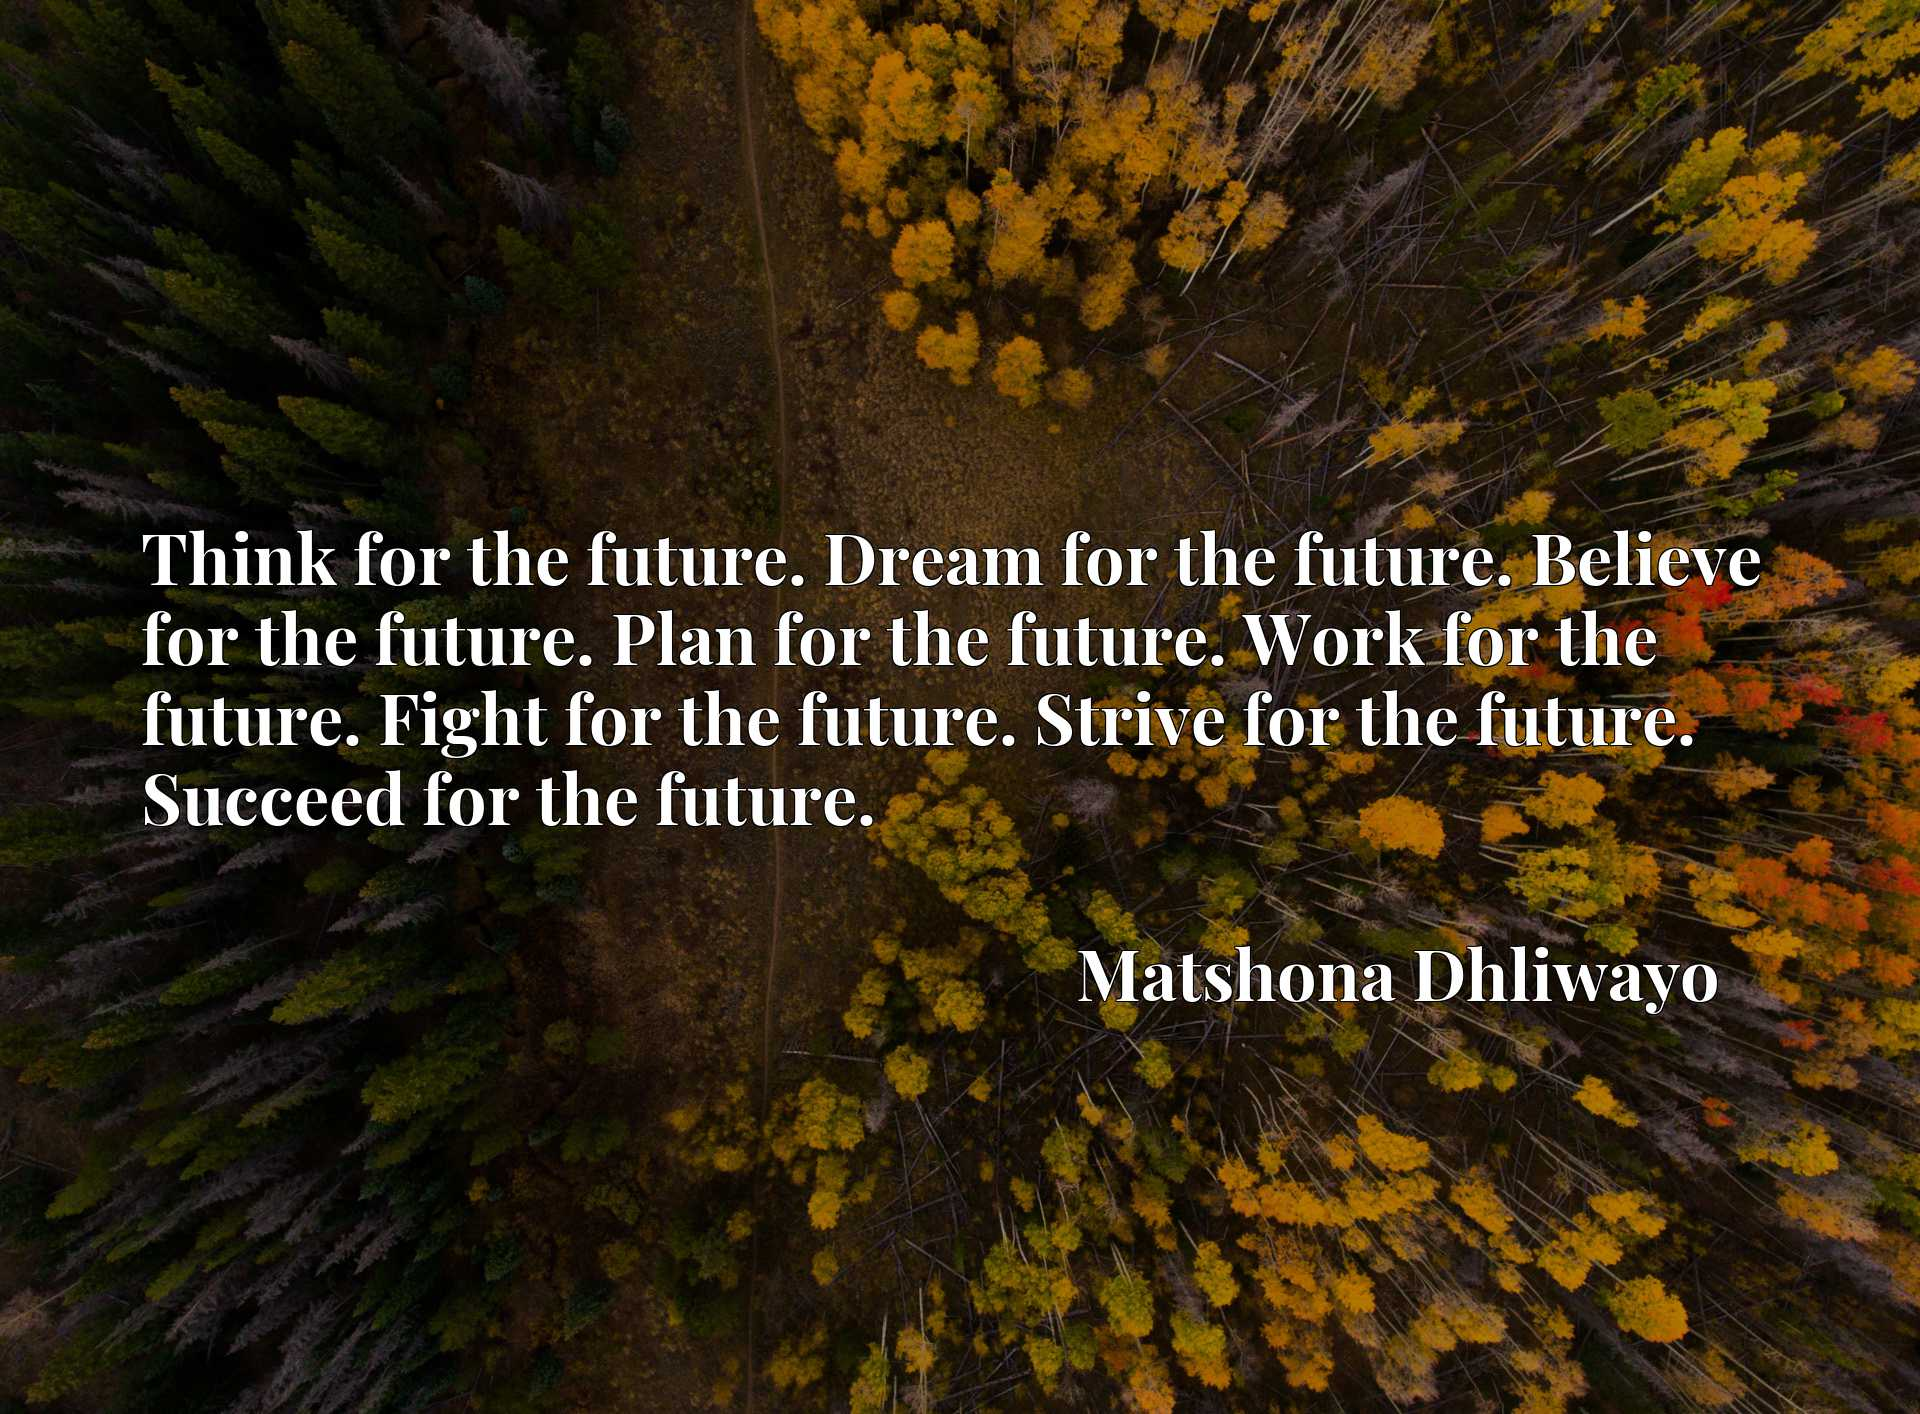 Think for the future. Dream for the future. Believe for the future. Plan for the future. Work for the future. Fight for the future. Strive for the future. Succeed for the future.